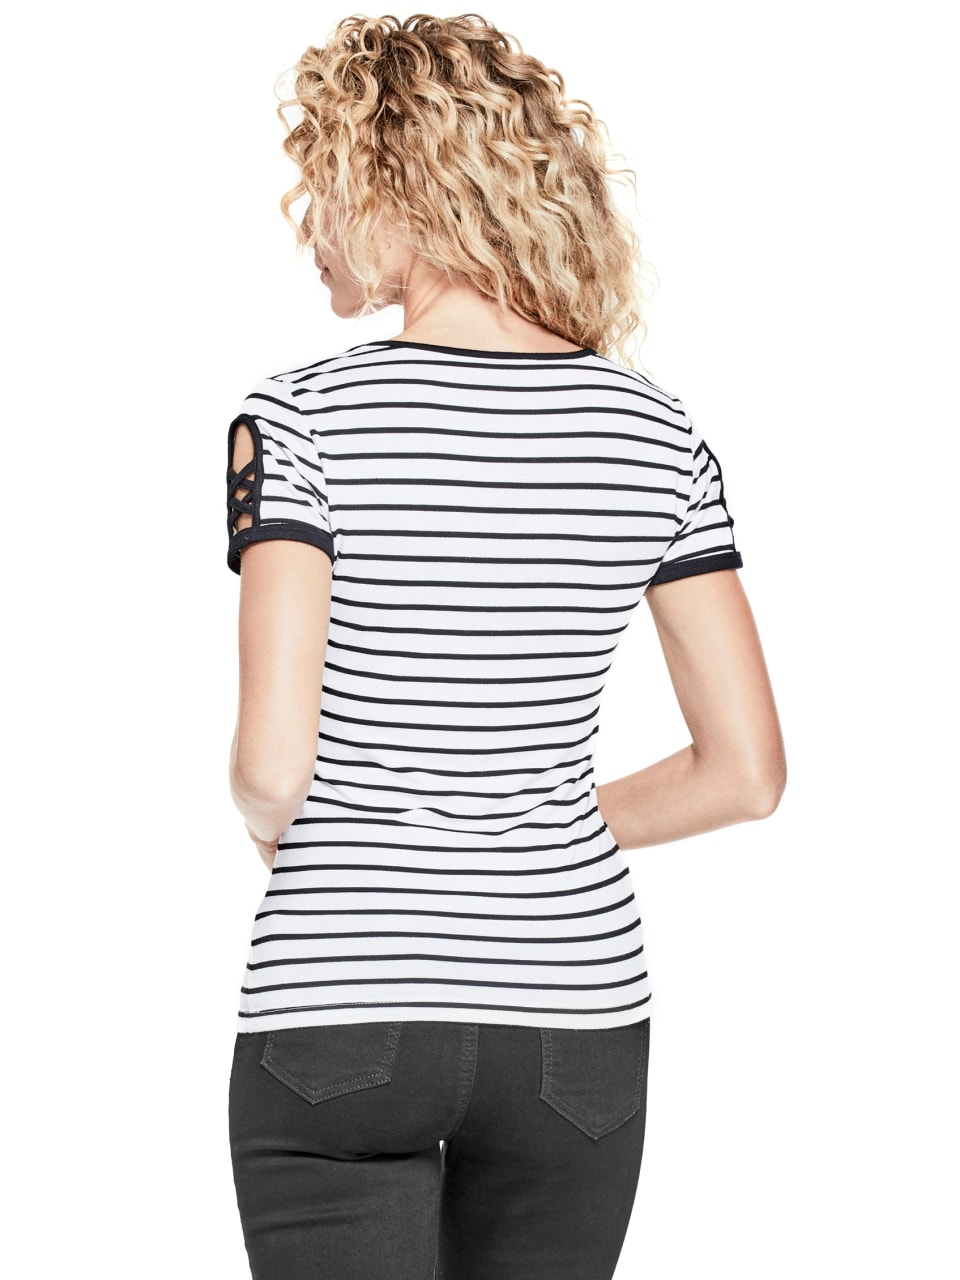 GUESS-Factory-Women-039-s-Nico-Striped-Cutout-Scoop-Neck-Short-Sleeve-Tee thumbnail 8